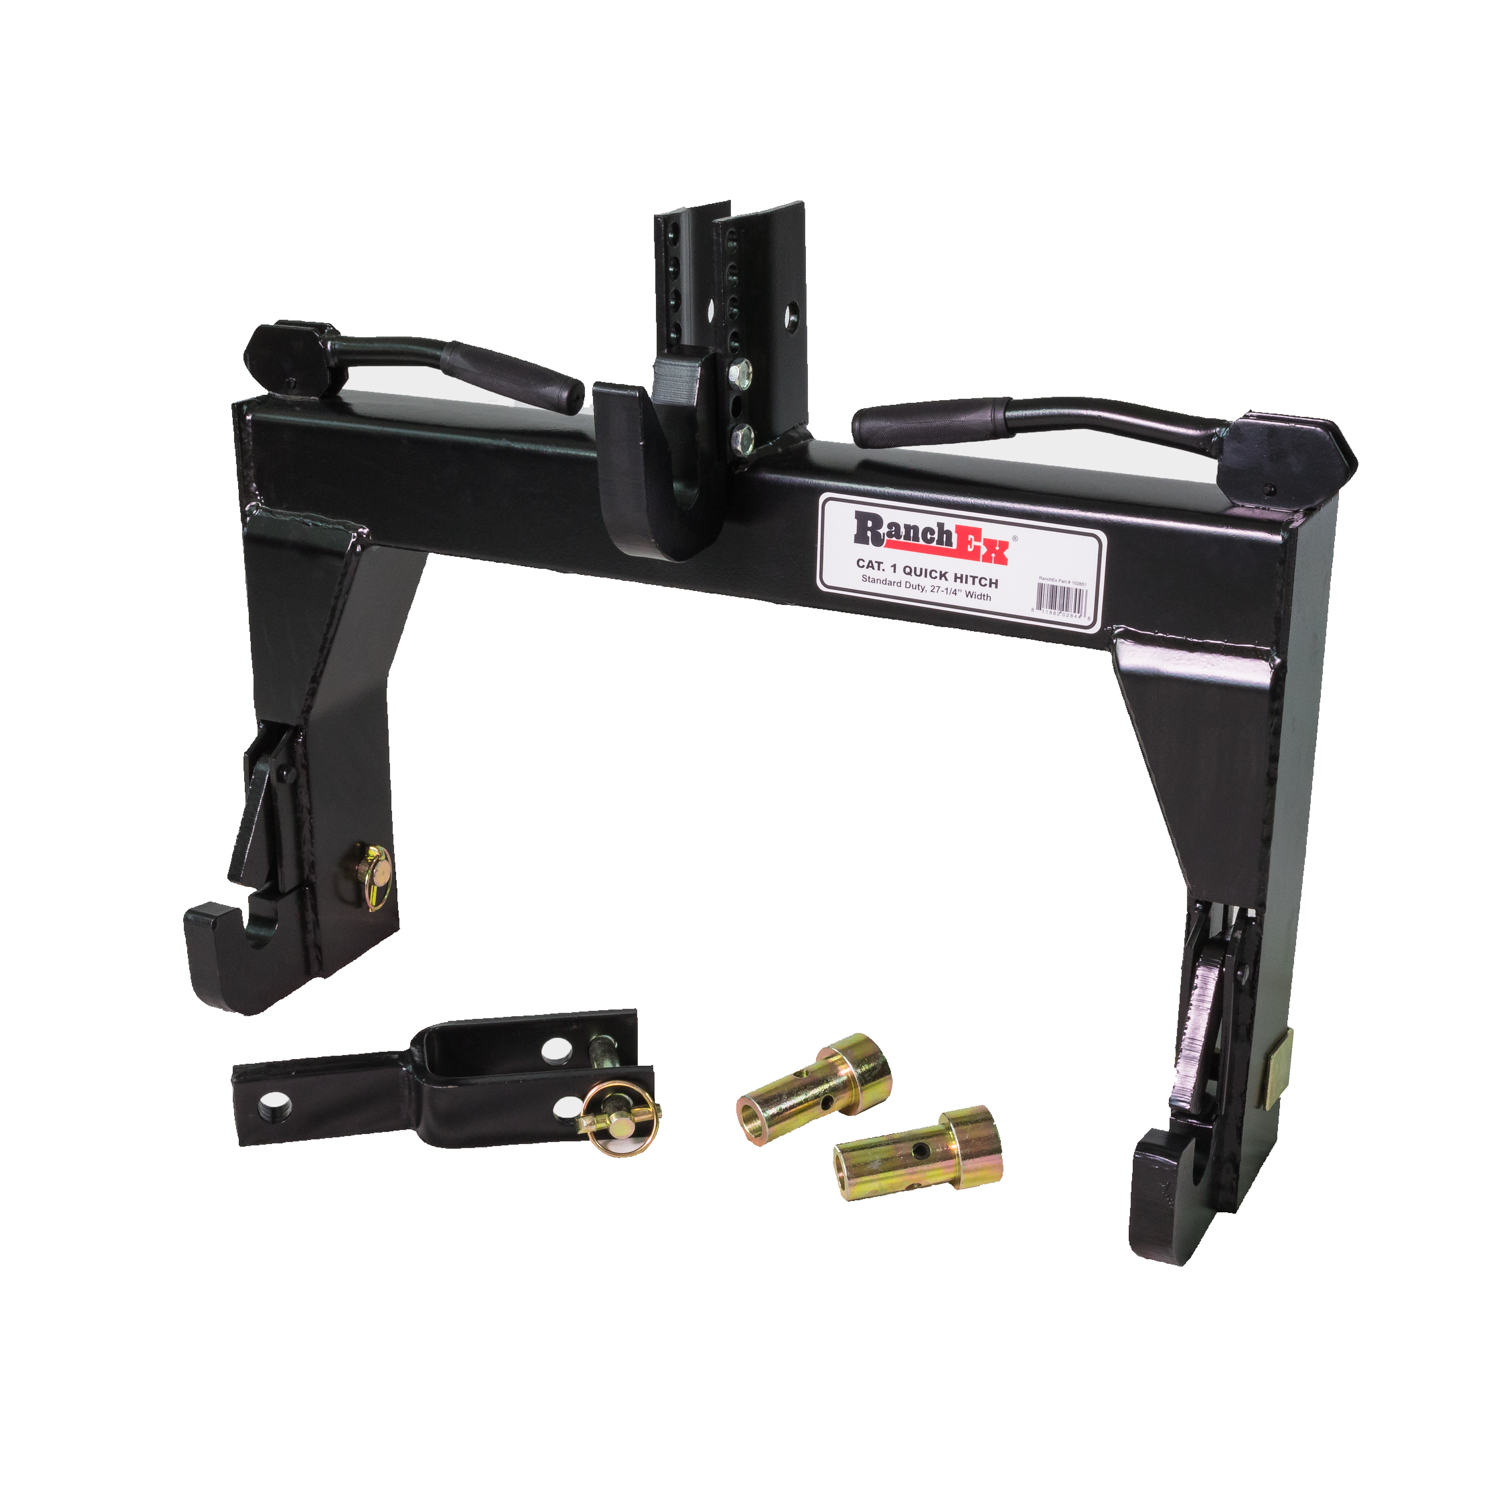 RanchEx Cat. 1 Quick Hitch, Adjustable Top Bracket, Includes Top Pins and Adapter Bushings